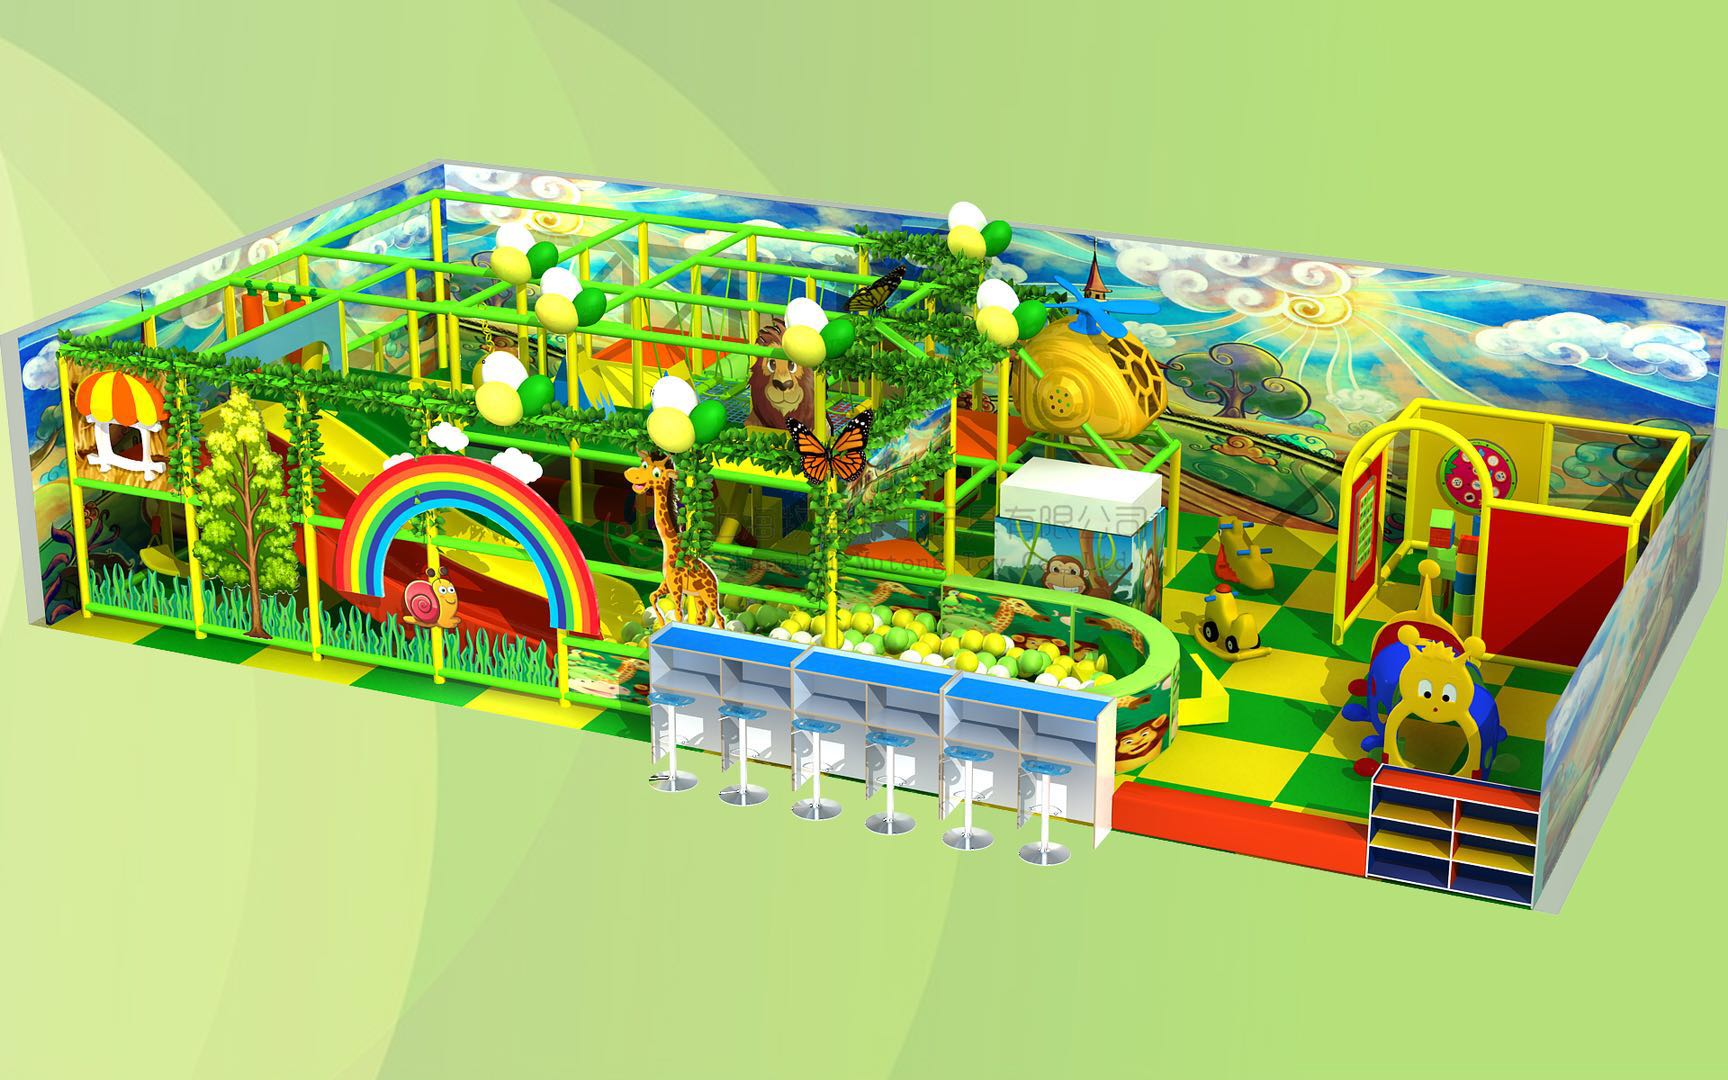 Plastic indoor playground equipment prices, kids' toys indoor playground Featured Image